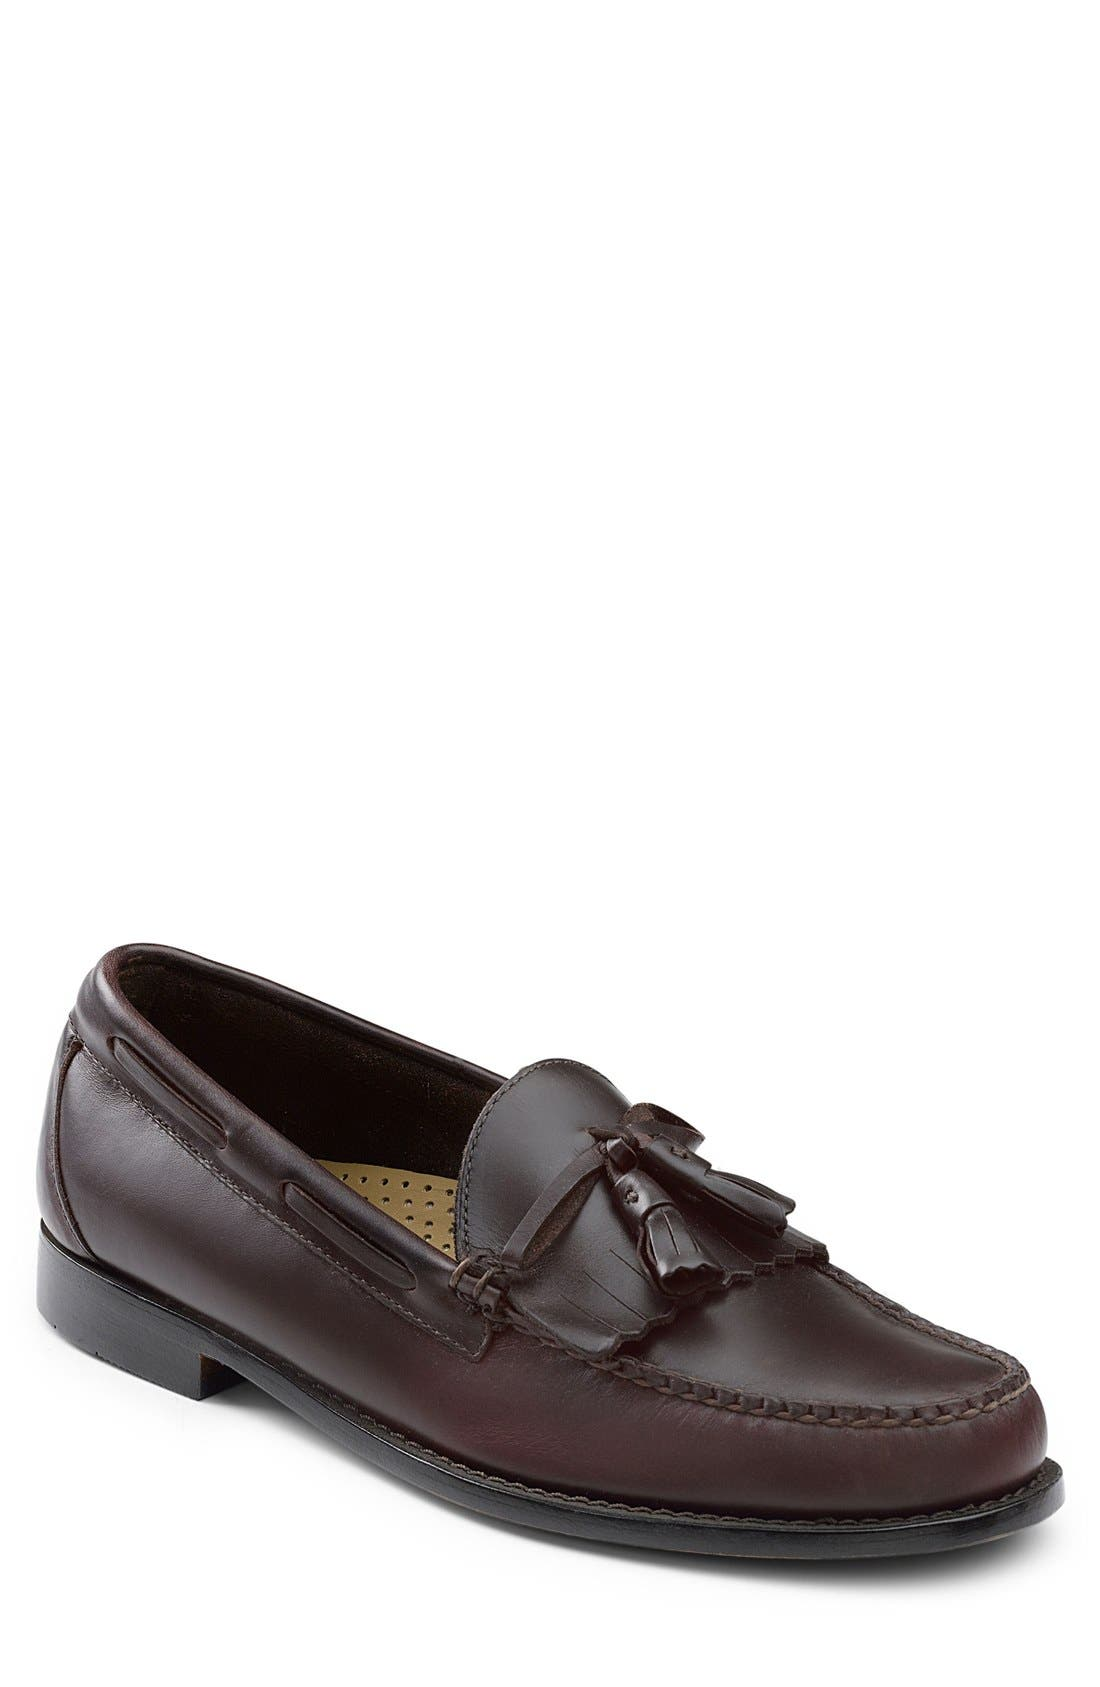 'Lawrence' Tassel Loafer,                             Main thumbnail 1, color,                             Burgundy